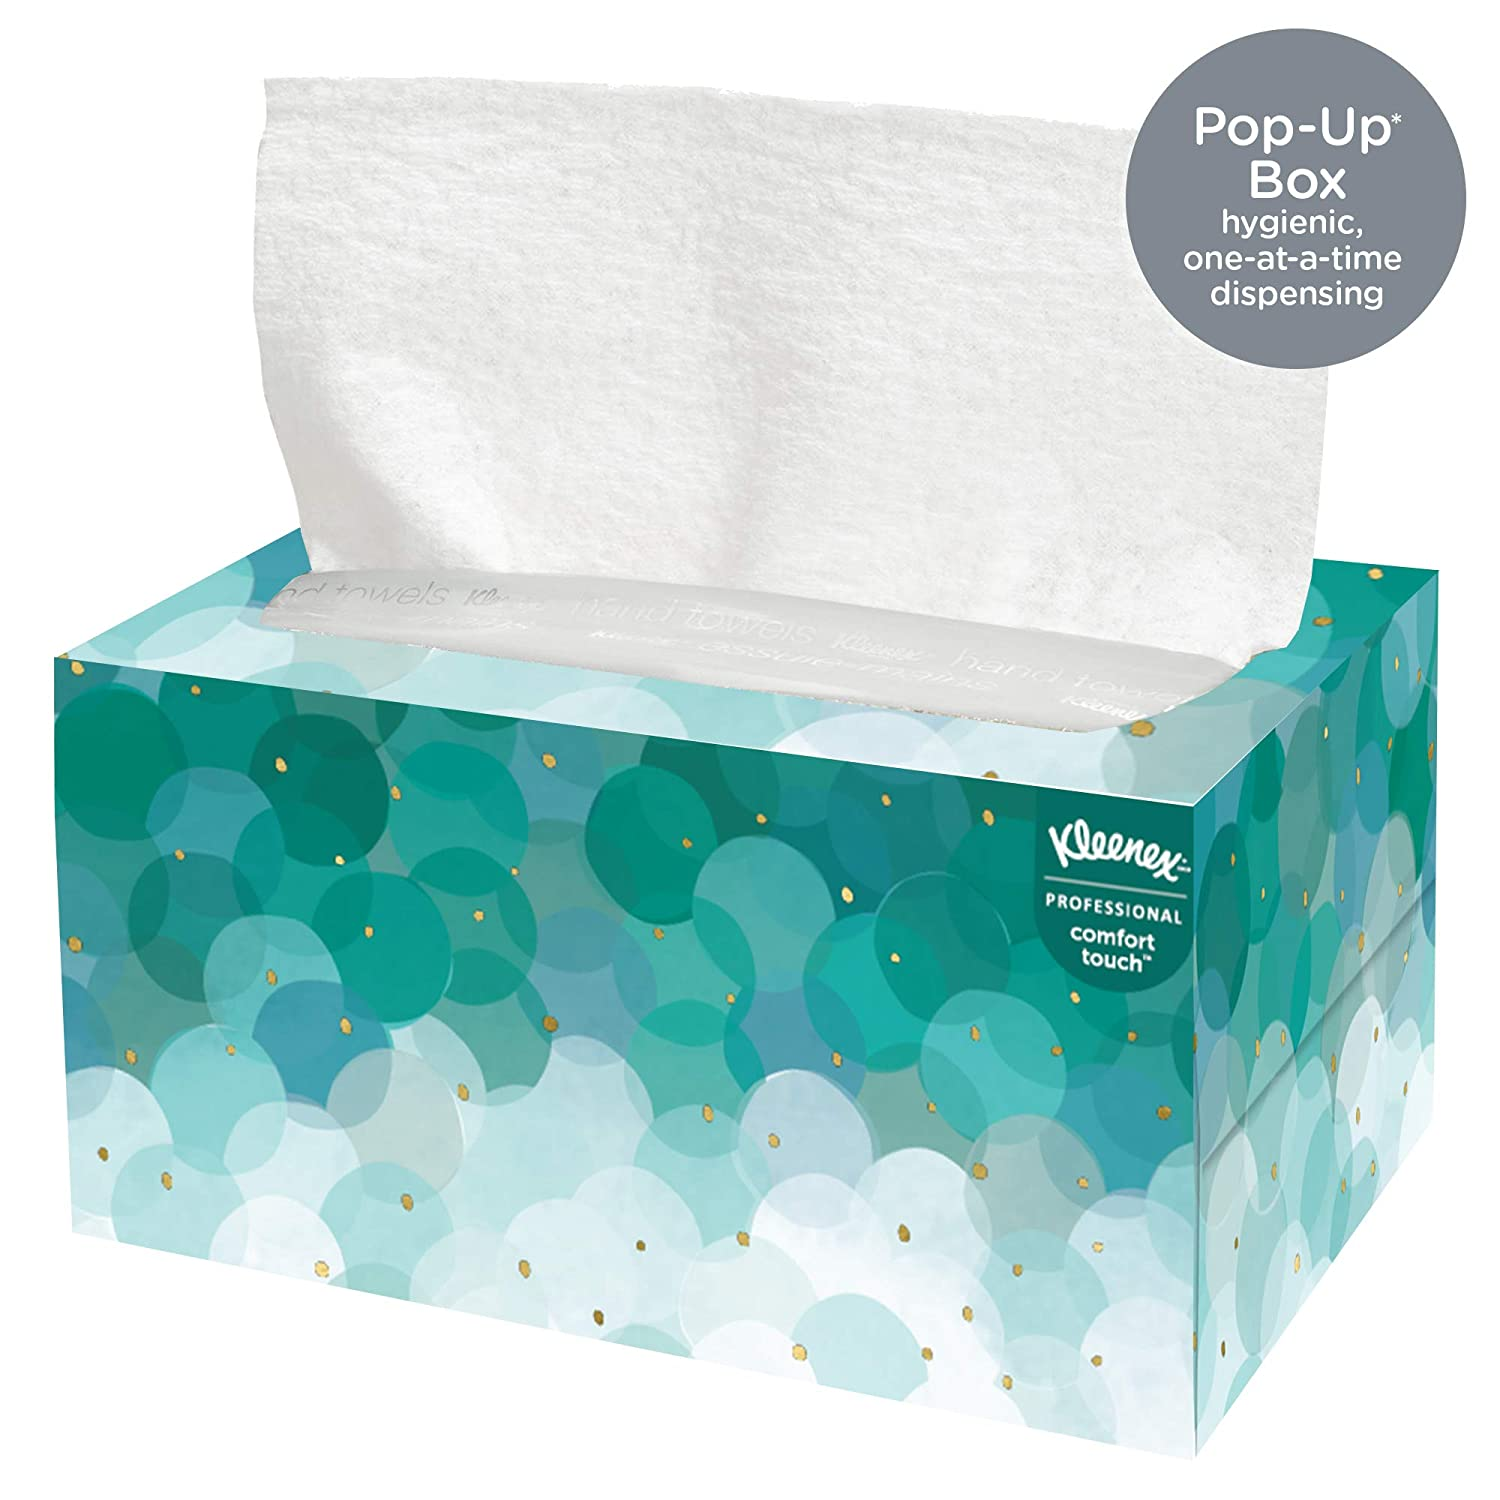 Kleenex Hand Towels 11268 Ultra Soft And Absorbent Pop Up Box 18 Boxes Case 70 Paper Hand Towels Box 1 260 Sheets Case Industrial Scientific